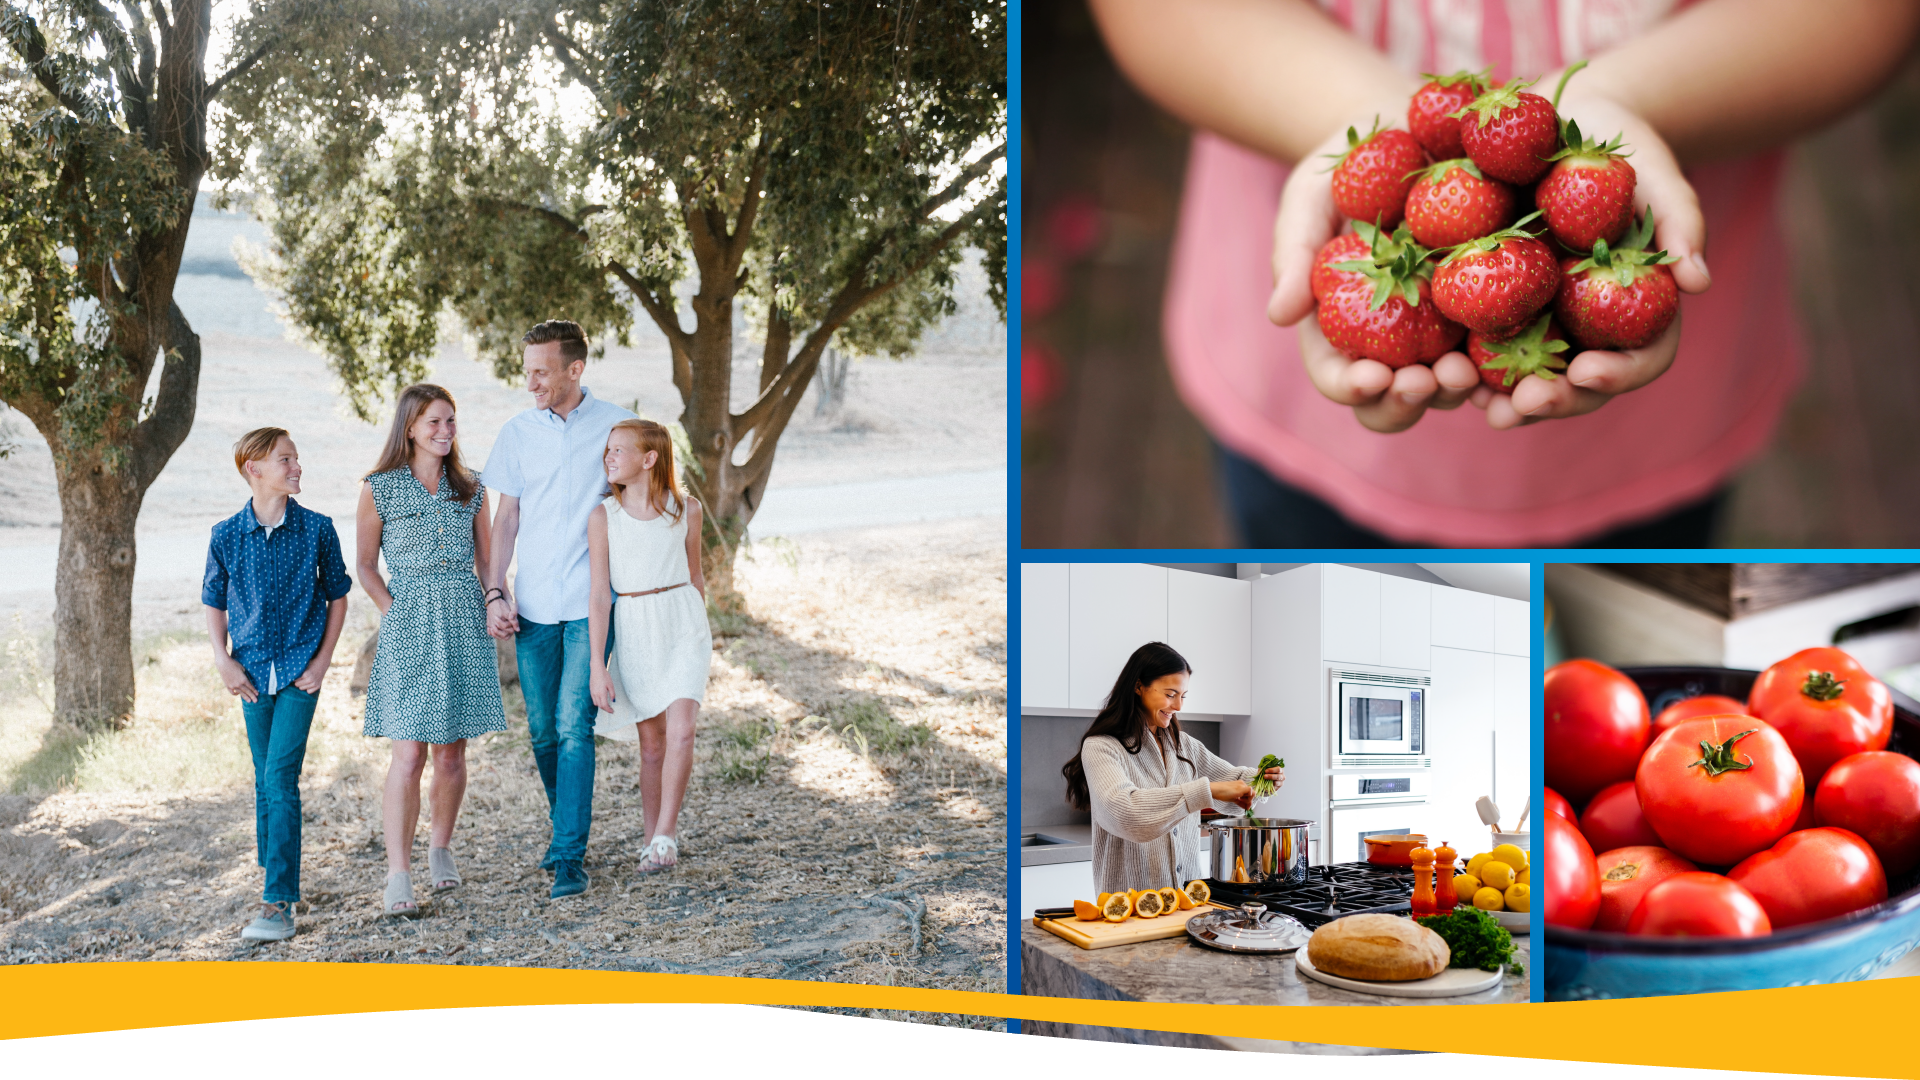 Flyer header with four images. Family walking in the woods, hands holding strawberries, woman cooking, and a bowl of tomatoes